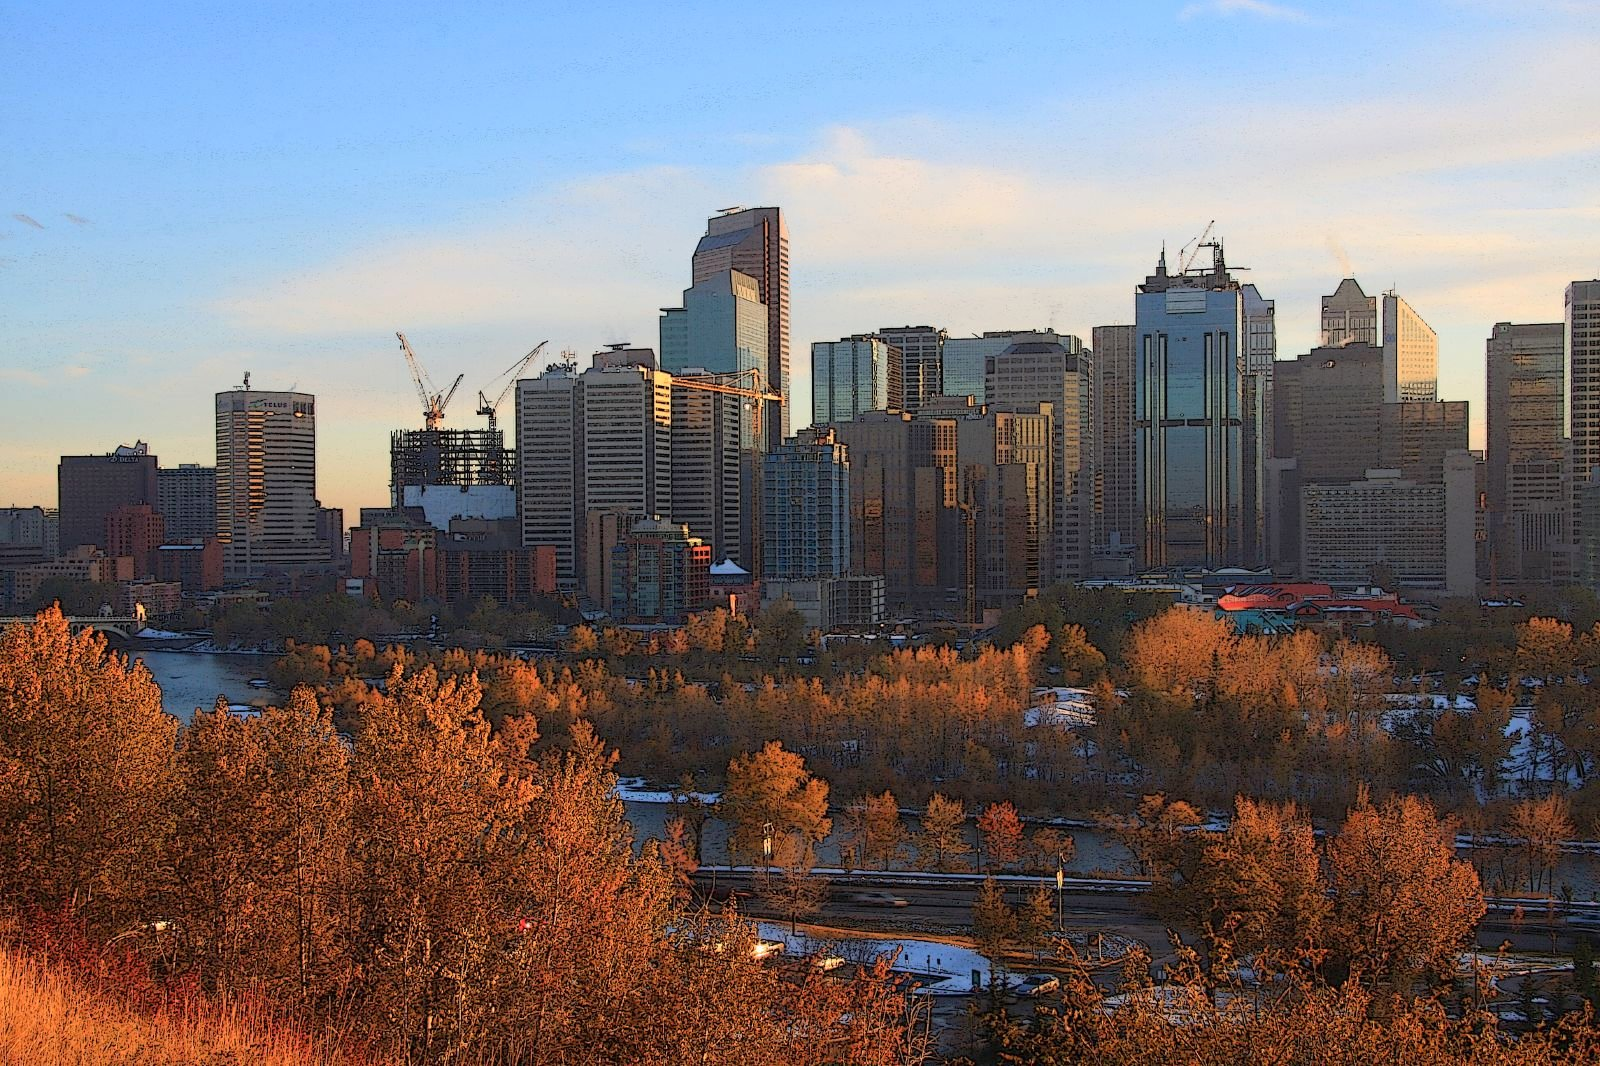 dating professionals calgary Dating & matchmaking calgary - the only bbb accredited dating service in calgary - matchmaker with 30+ yrs experience.